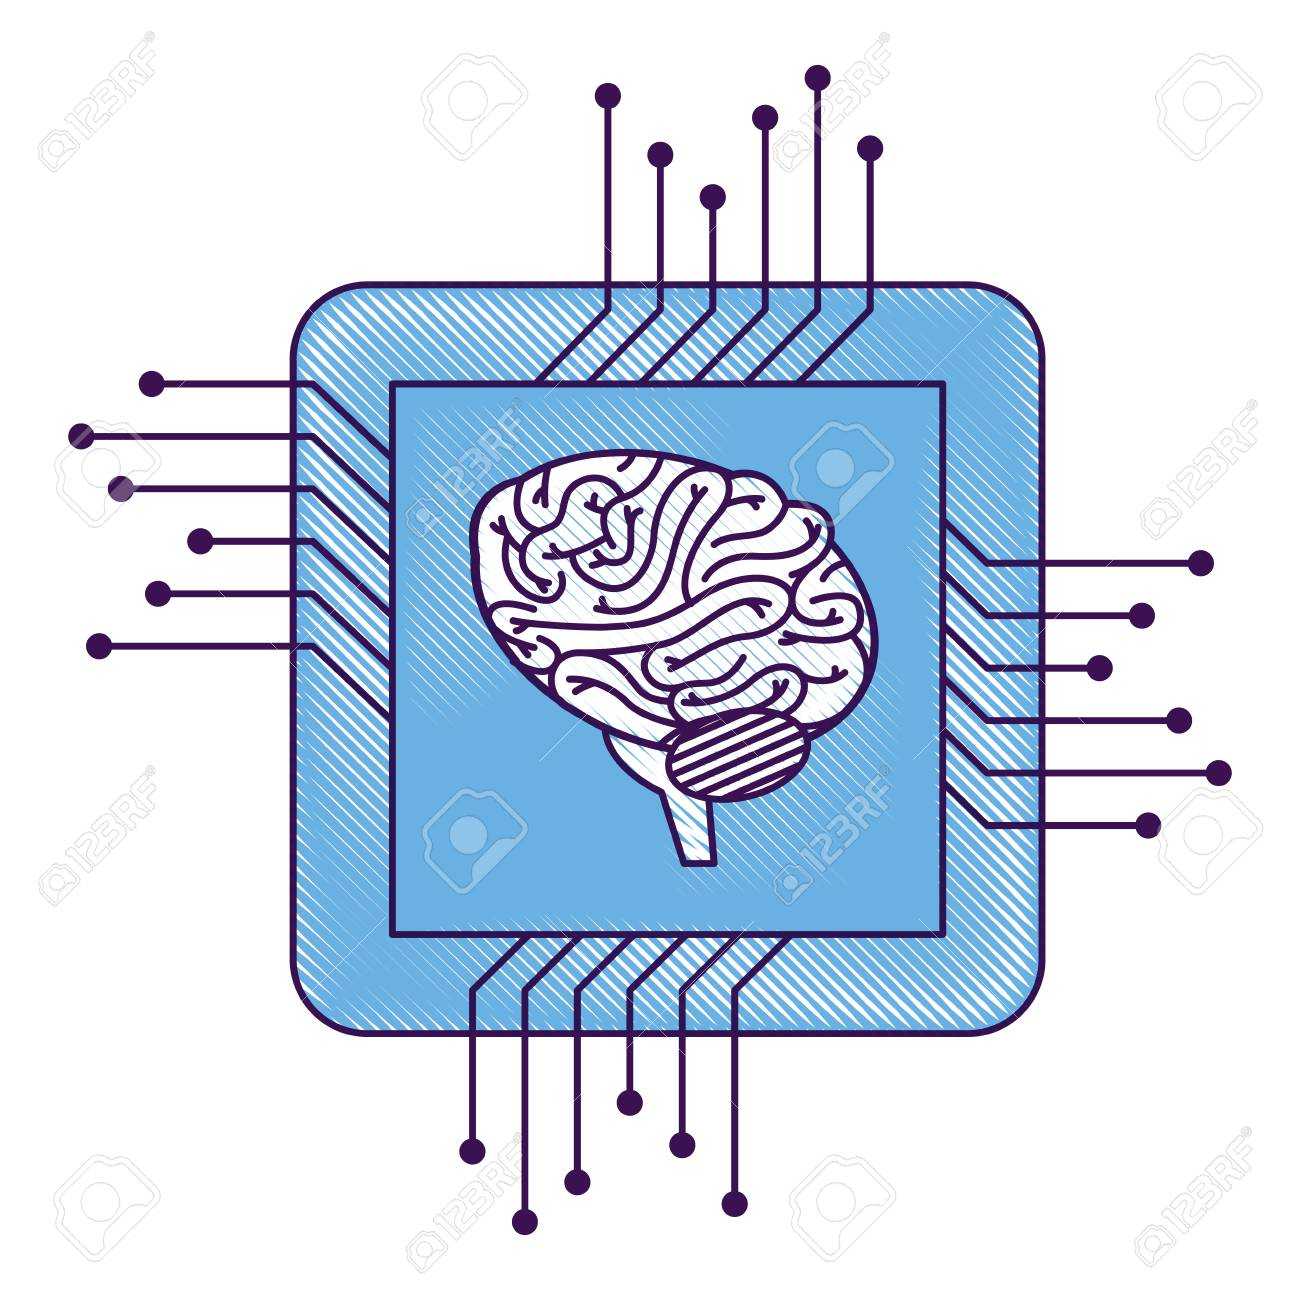 Processor Circuit With Brain Vector Illustration Design Royalty Free Diagram Stock 93117369